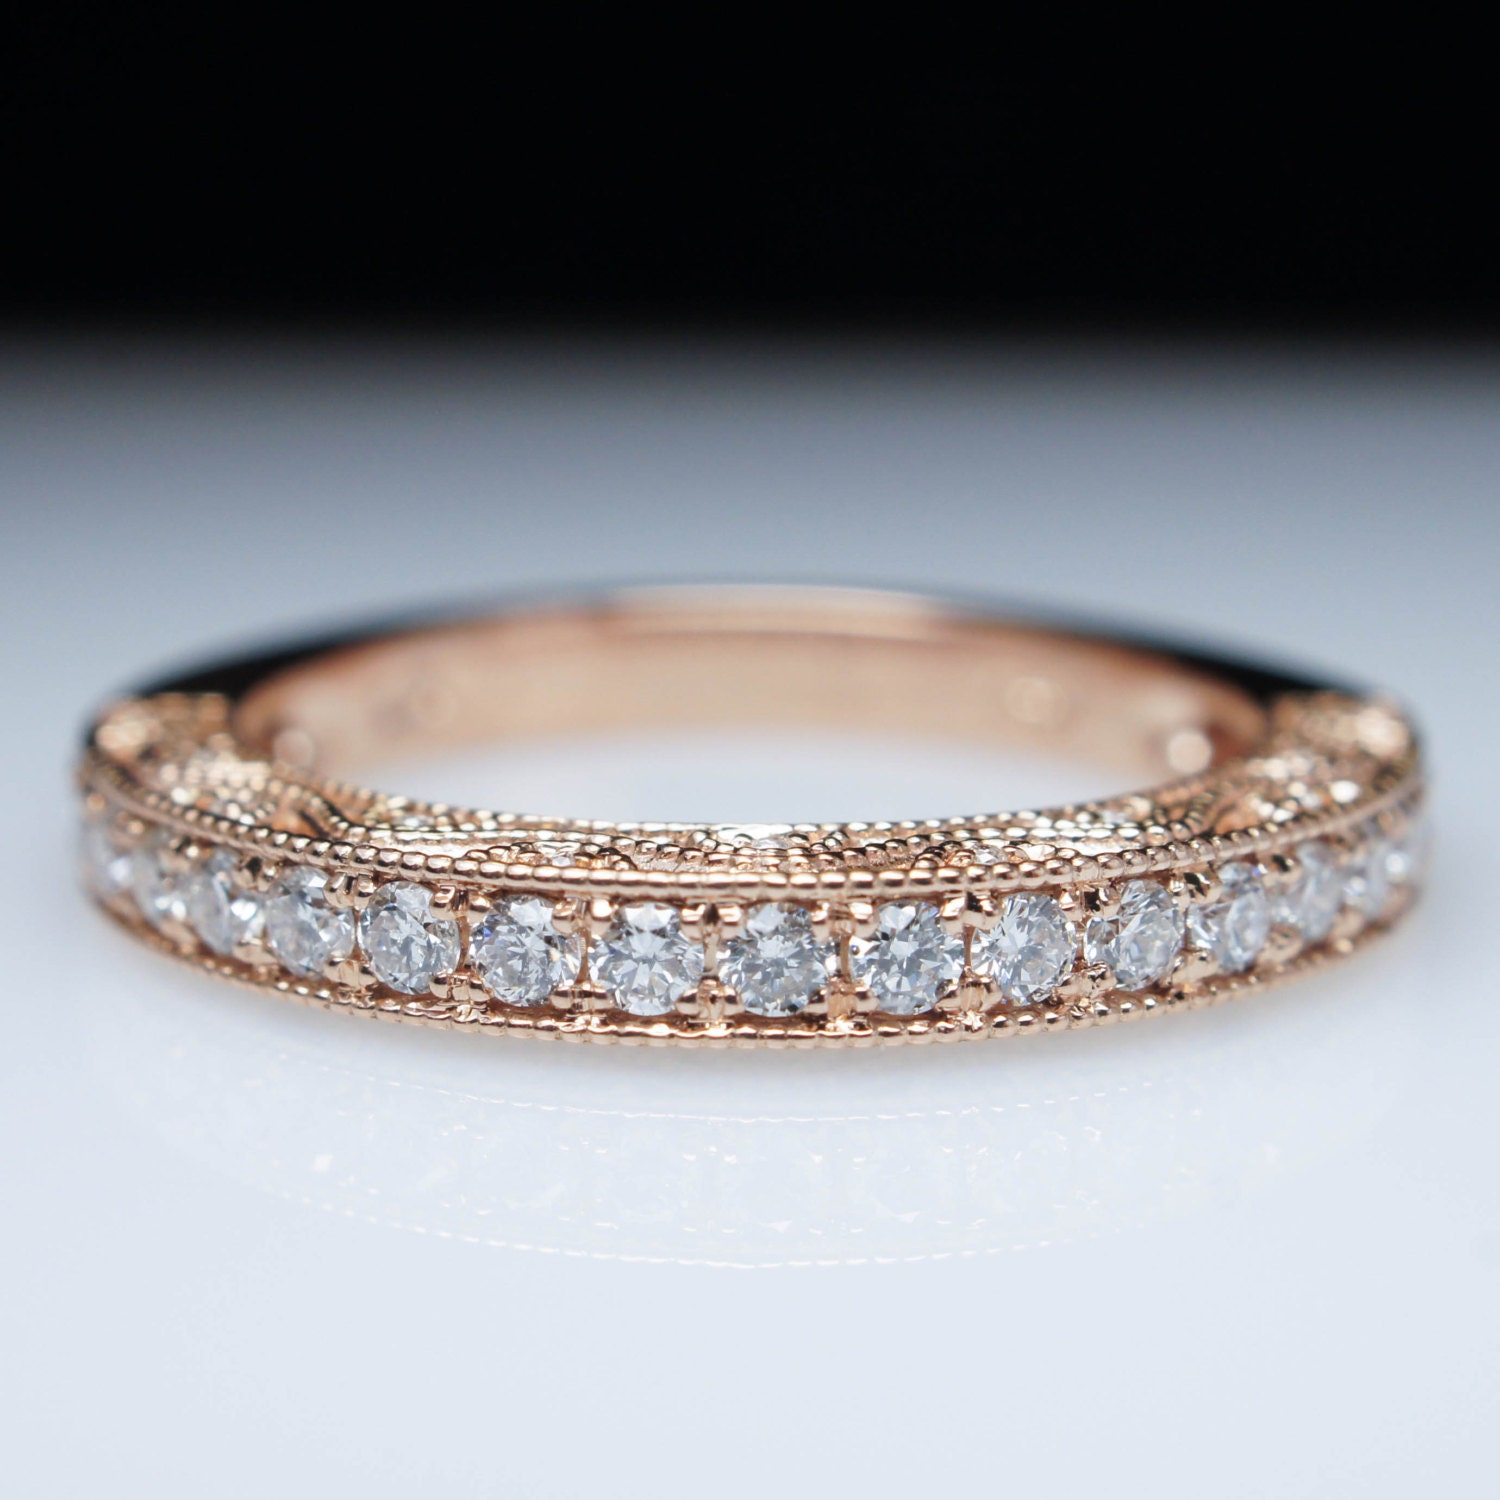 Intricate Vintage Style 50ctw Diamond Wedding Band Ring